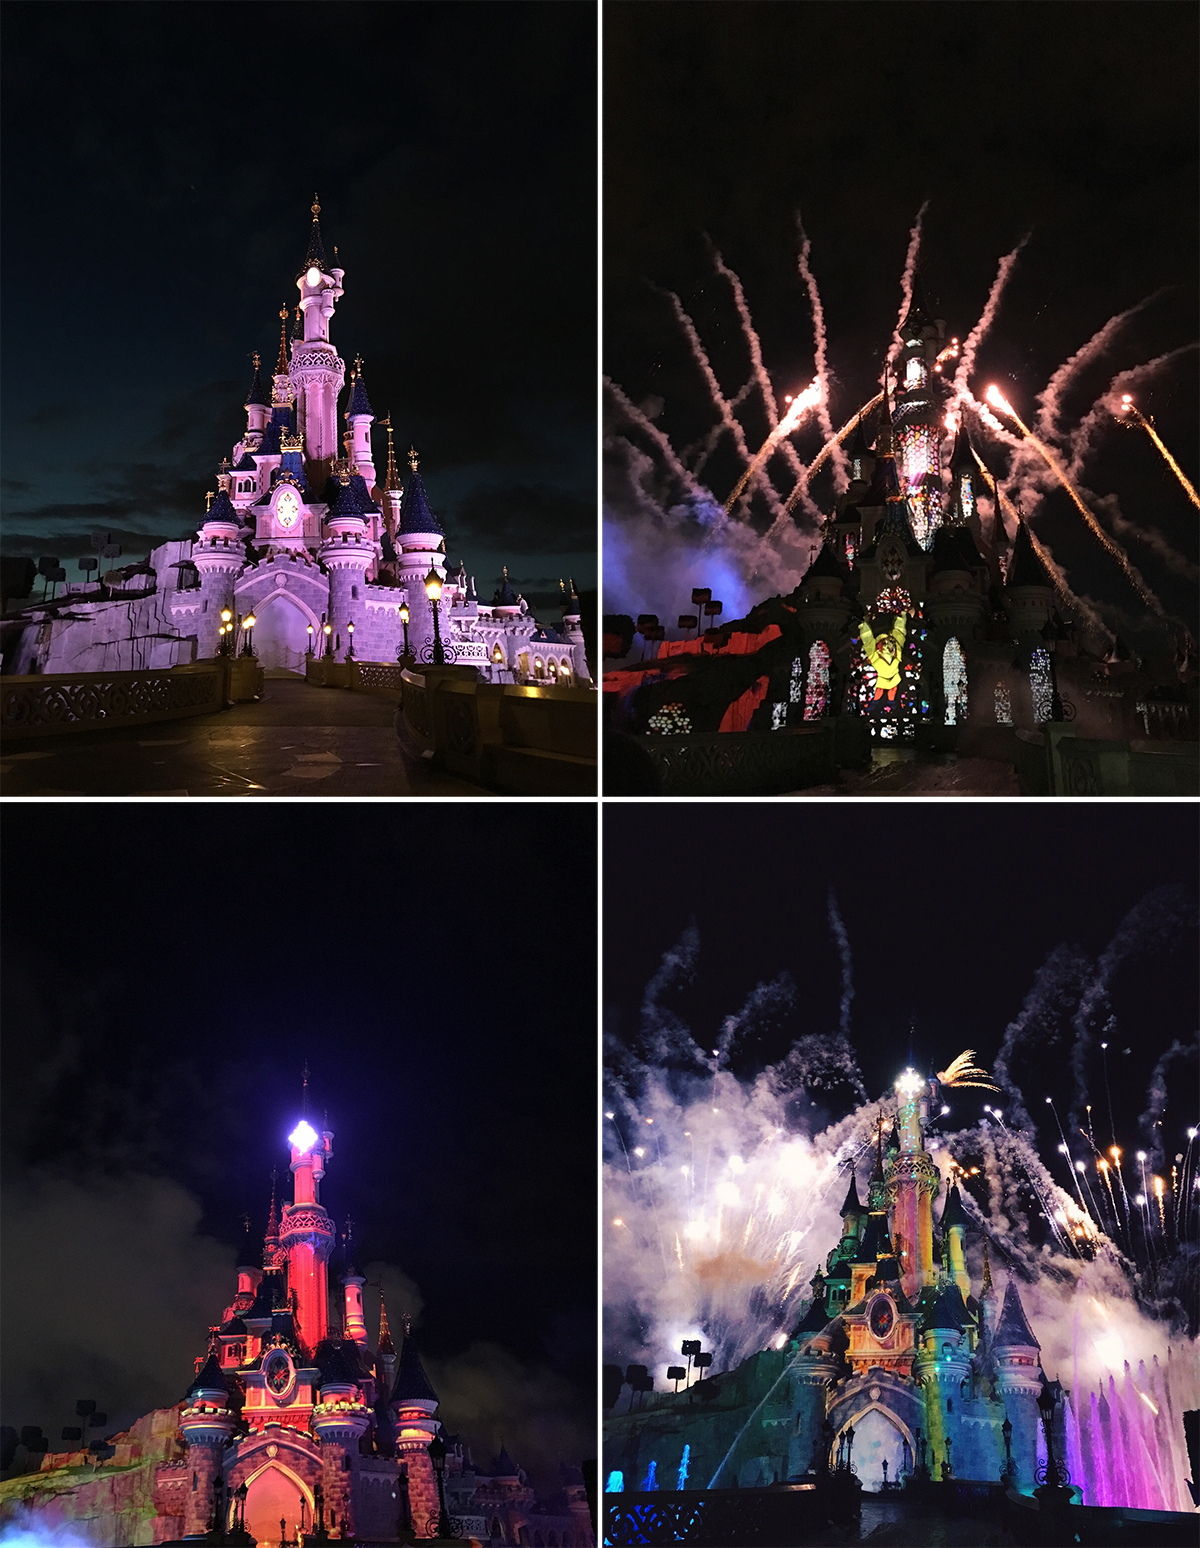 anna frost fafine disney castle disneyland paris